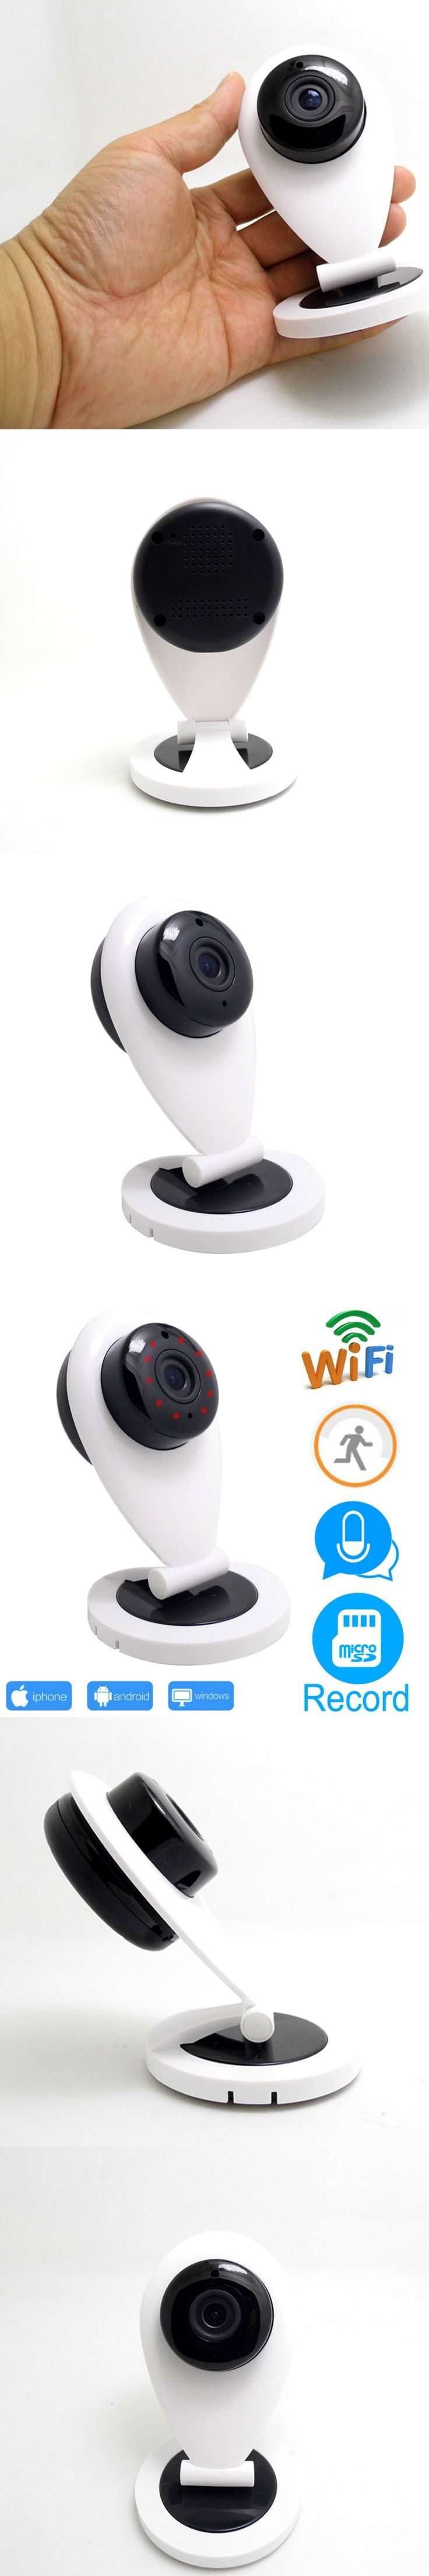 ip camera wifi security outdoor wi-fi mini ipcam wireless home Surveillance system infrared cctv kamera night vision cam 720p hd